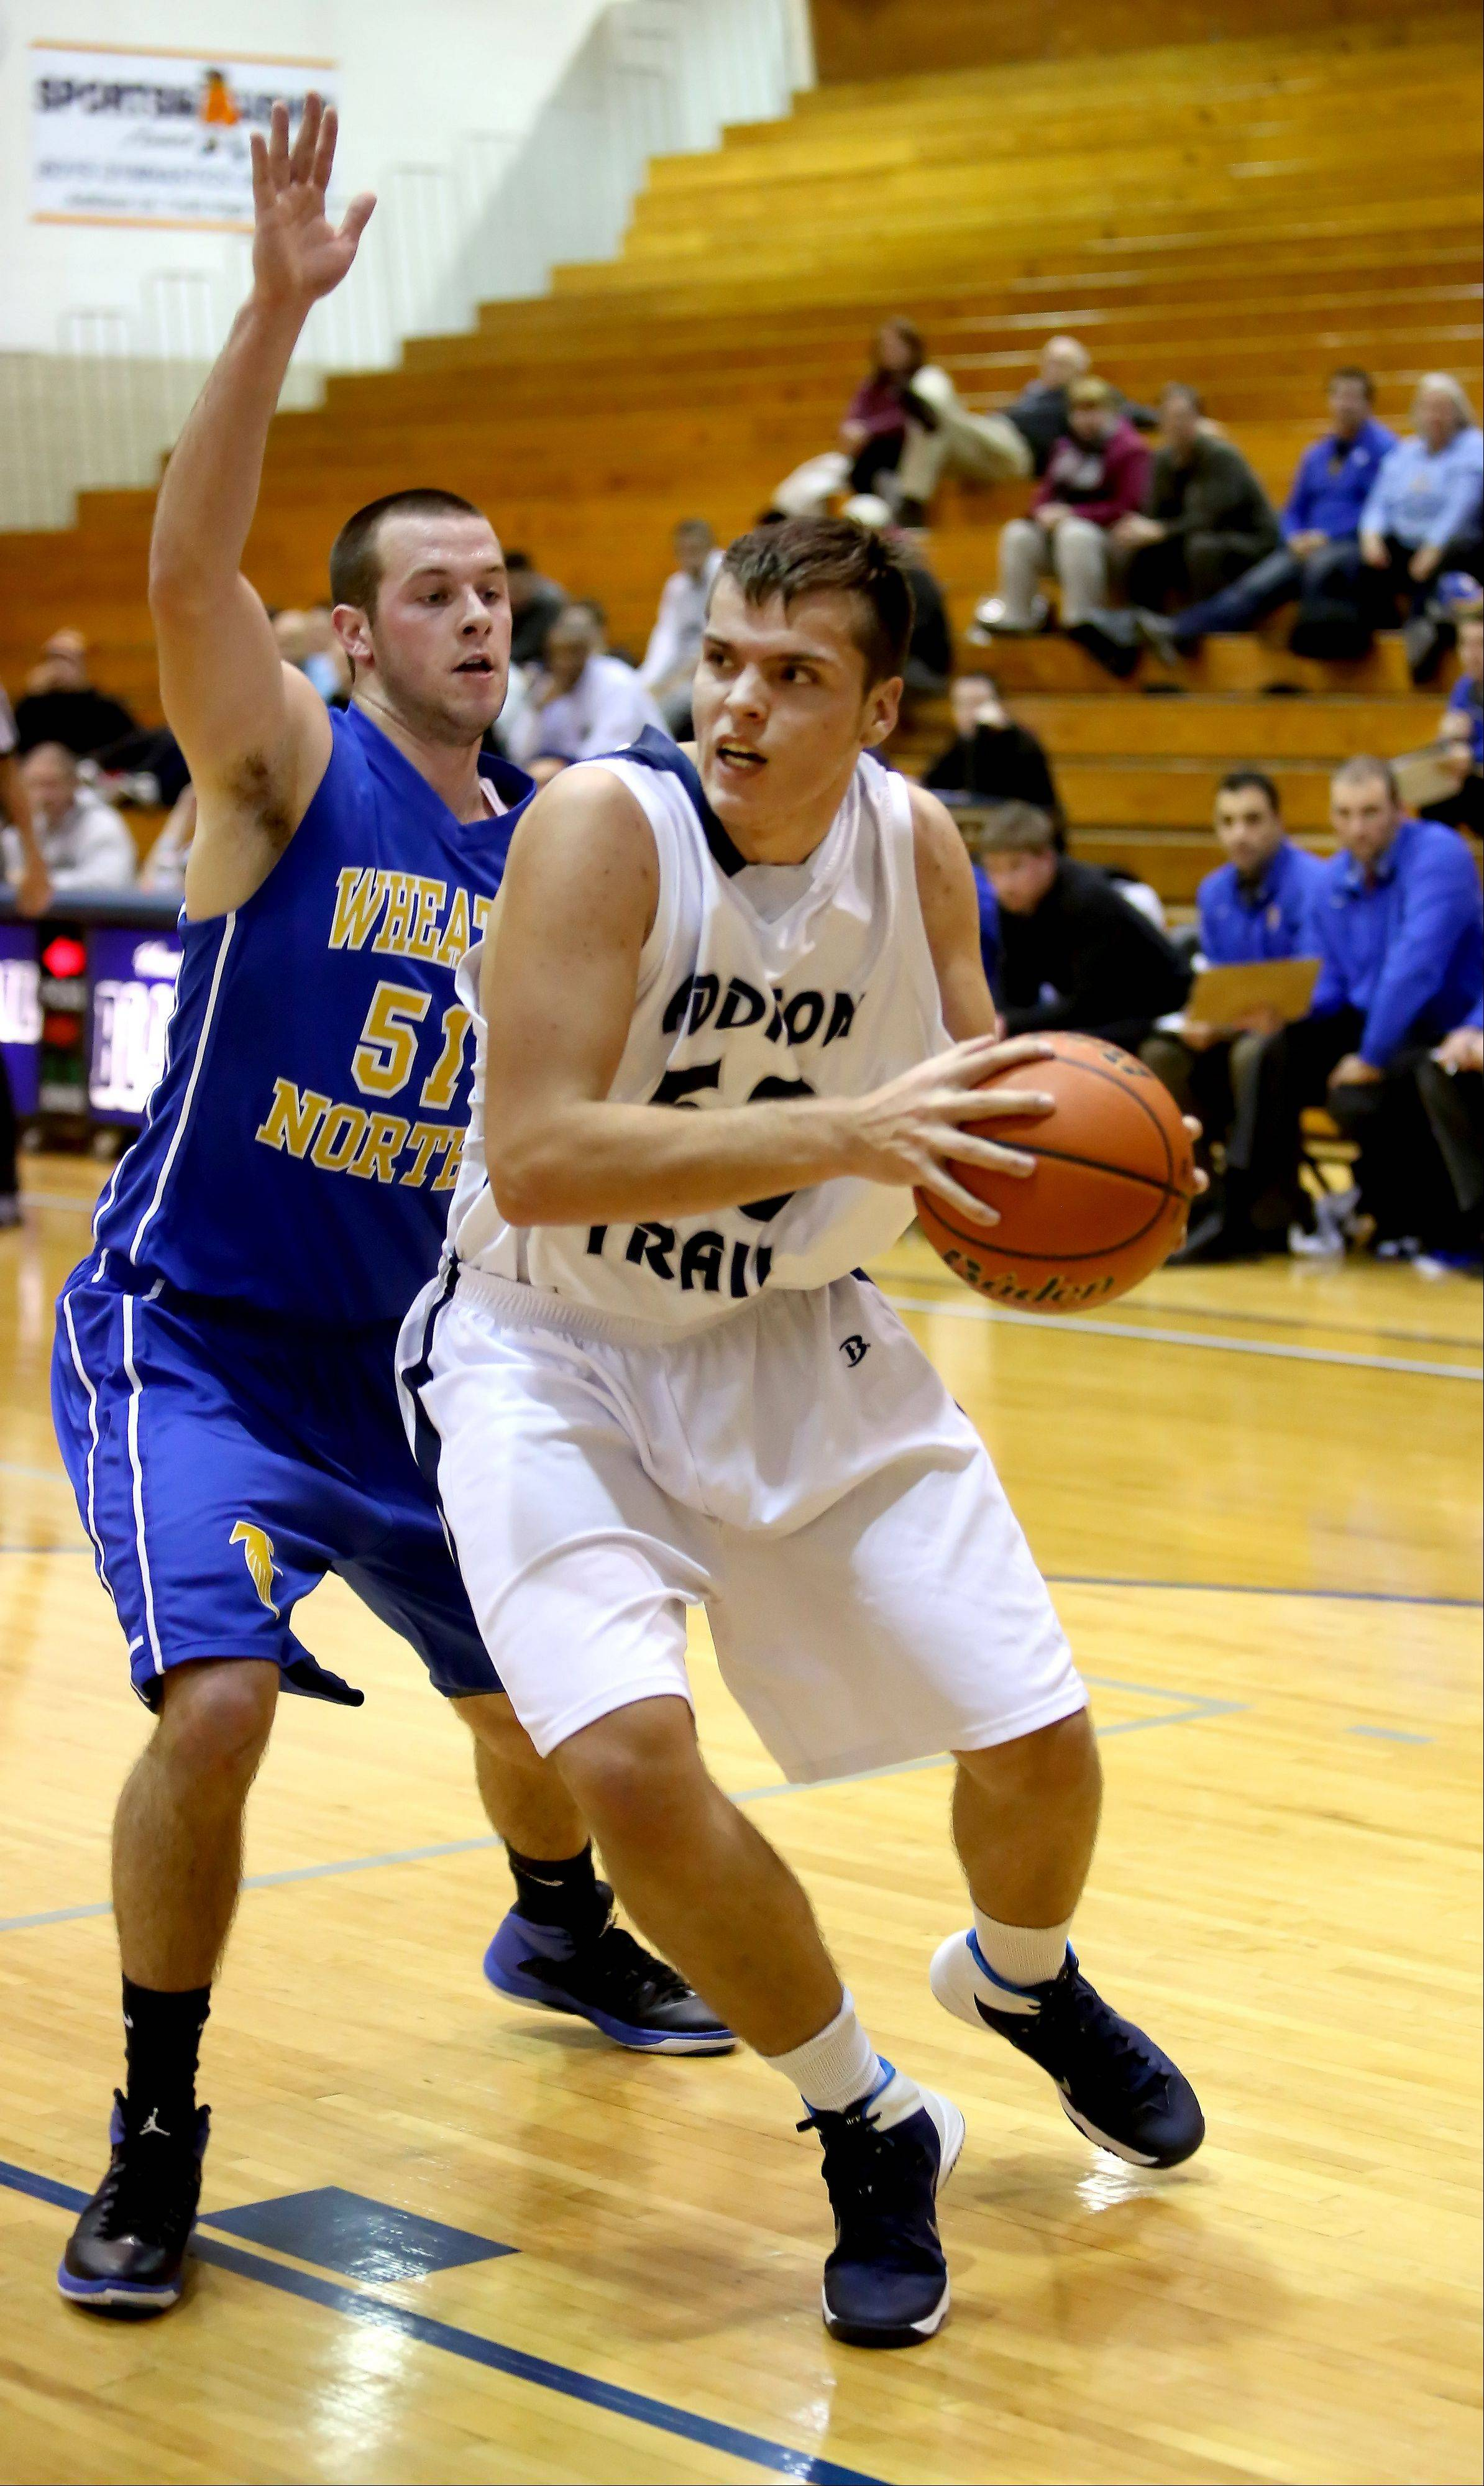 Simon Jakubczak of Addison Trail, left, moves around Matt Biegalski of Wheaton North.